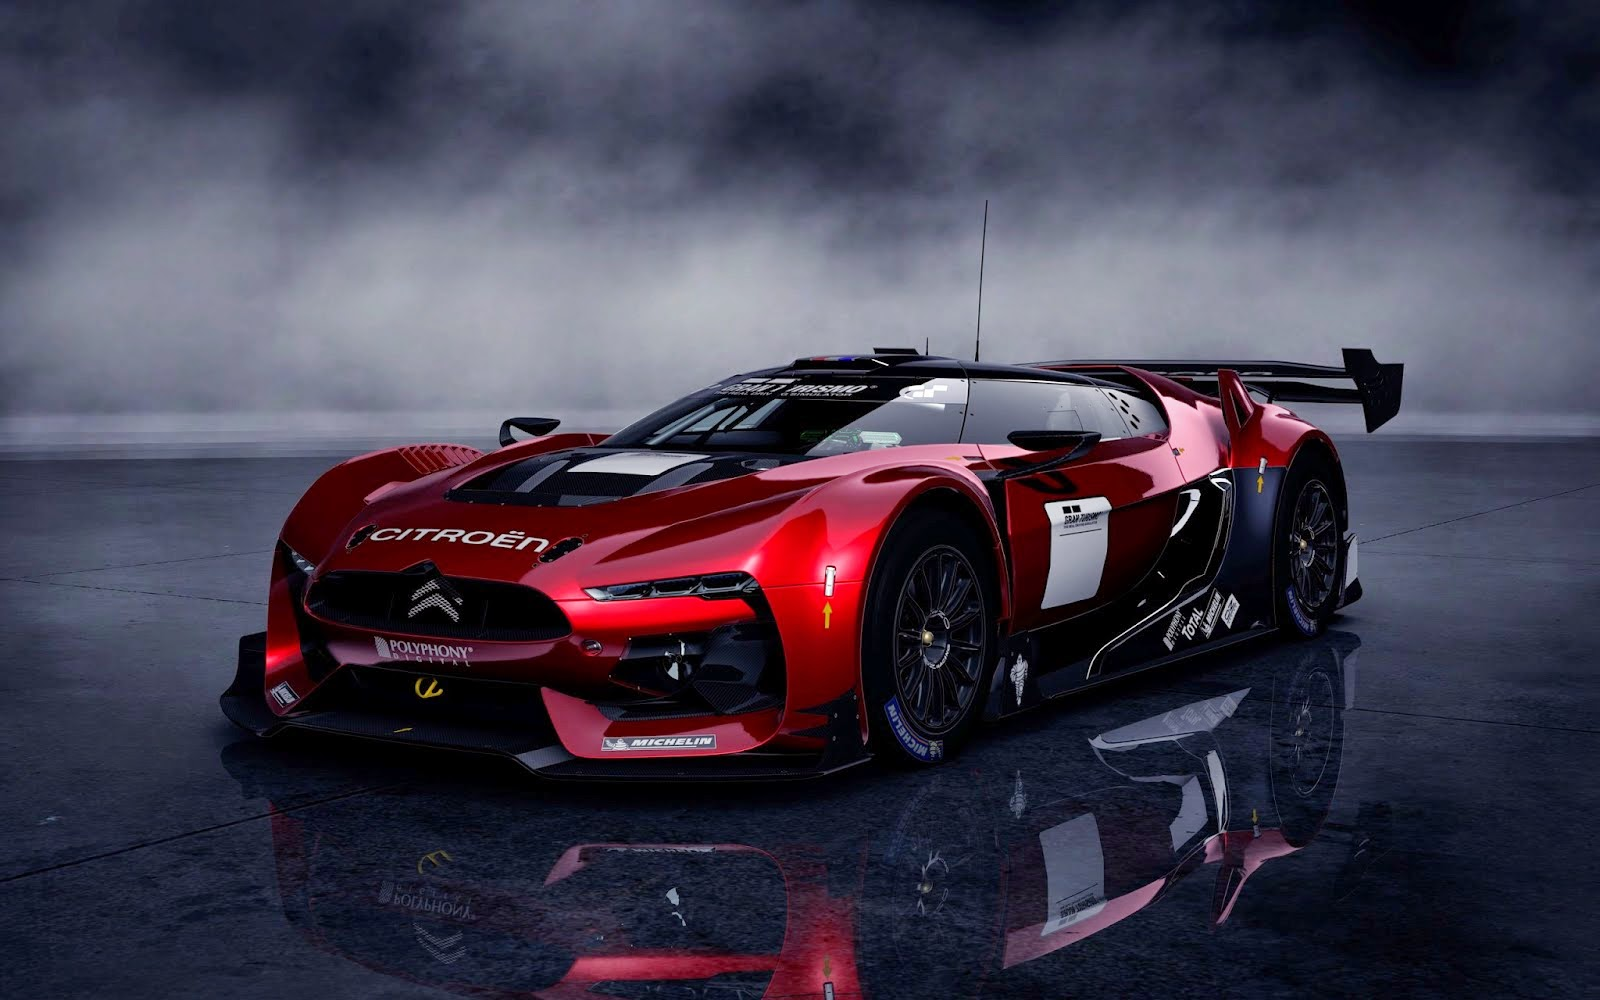 Wallpaper Mobil Sport Full Hd Posted By Zoey Thompson